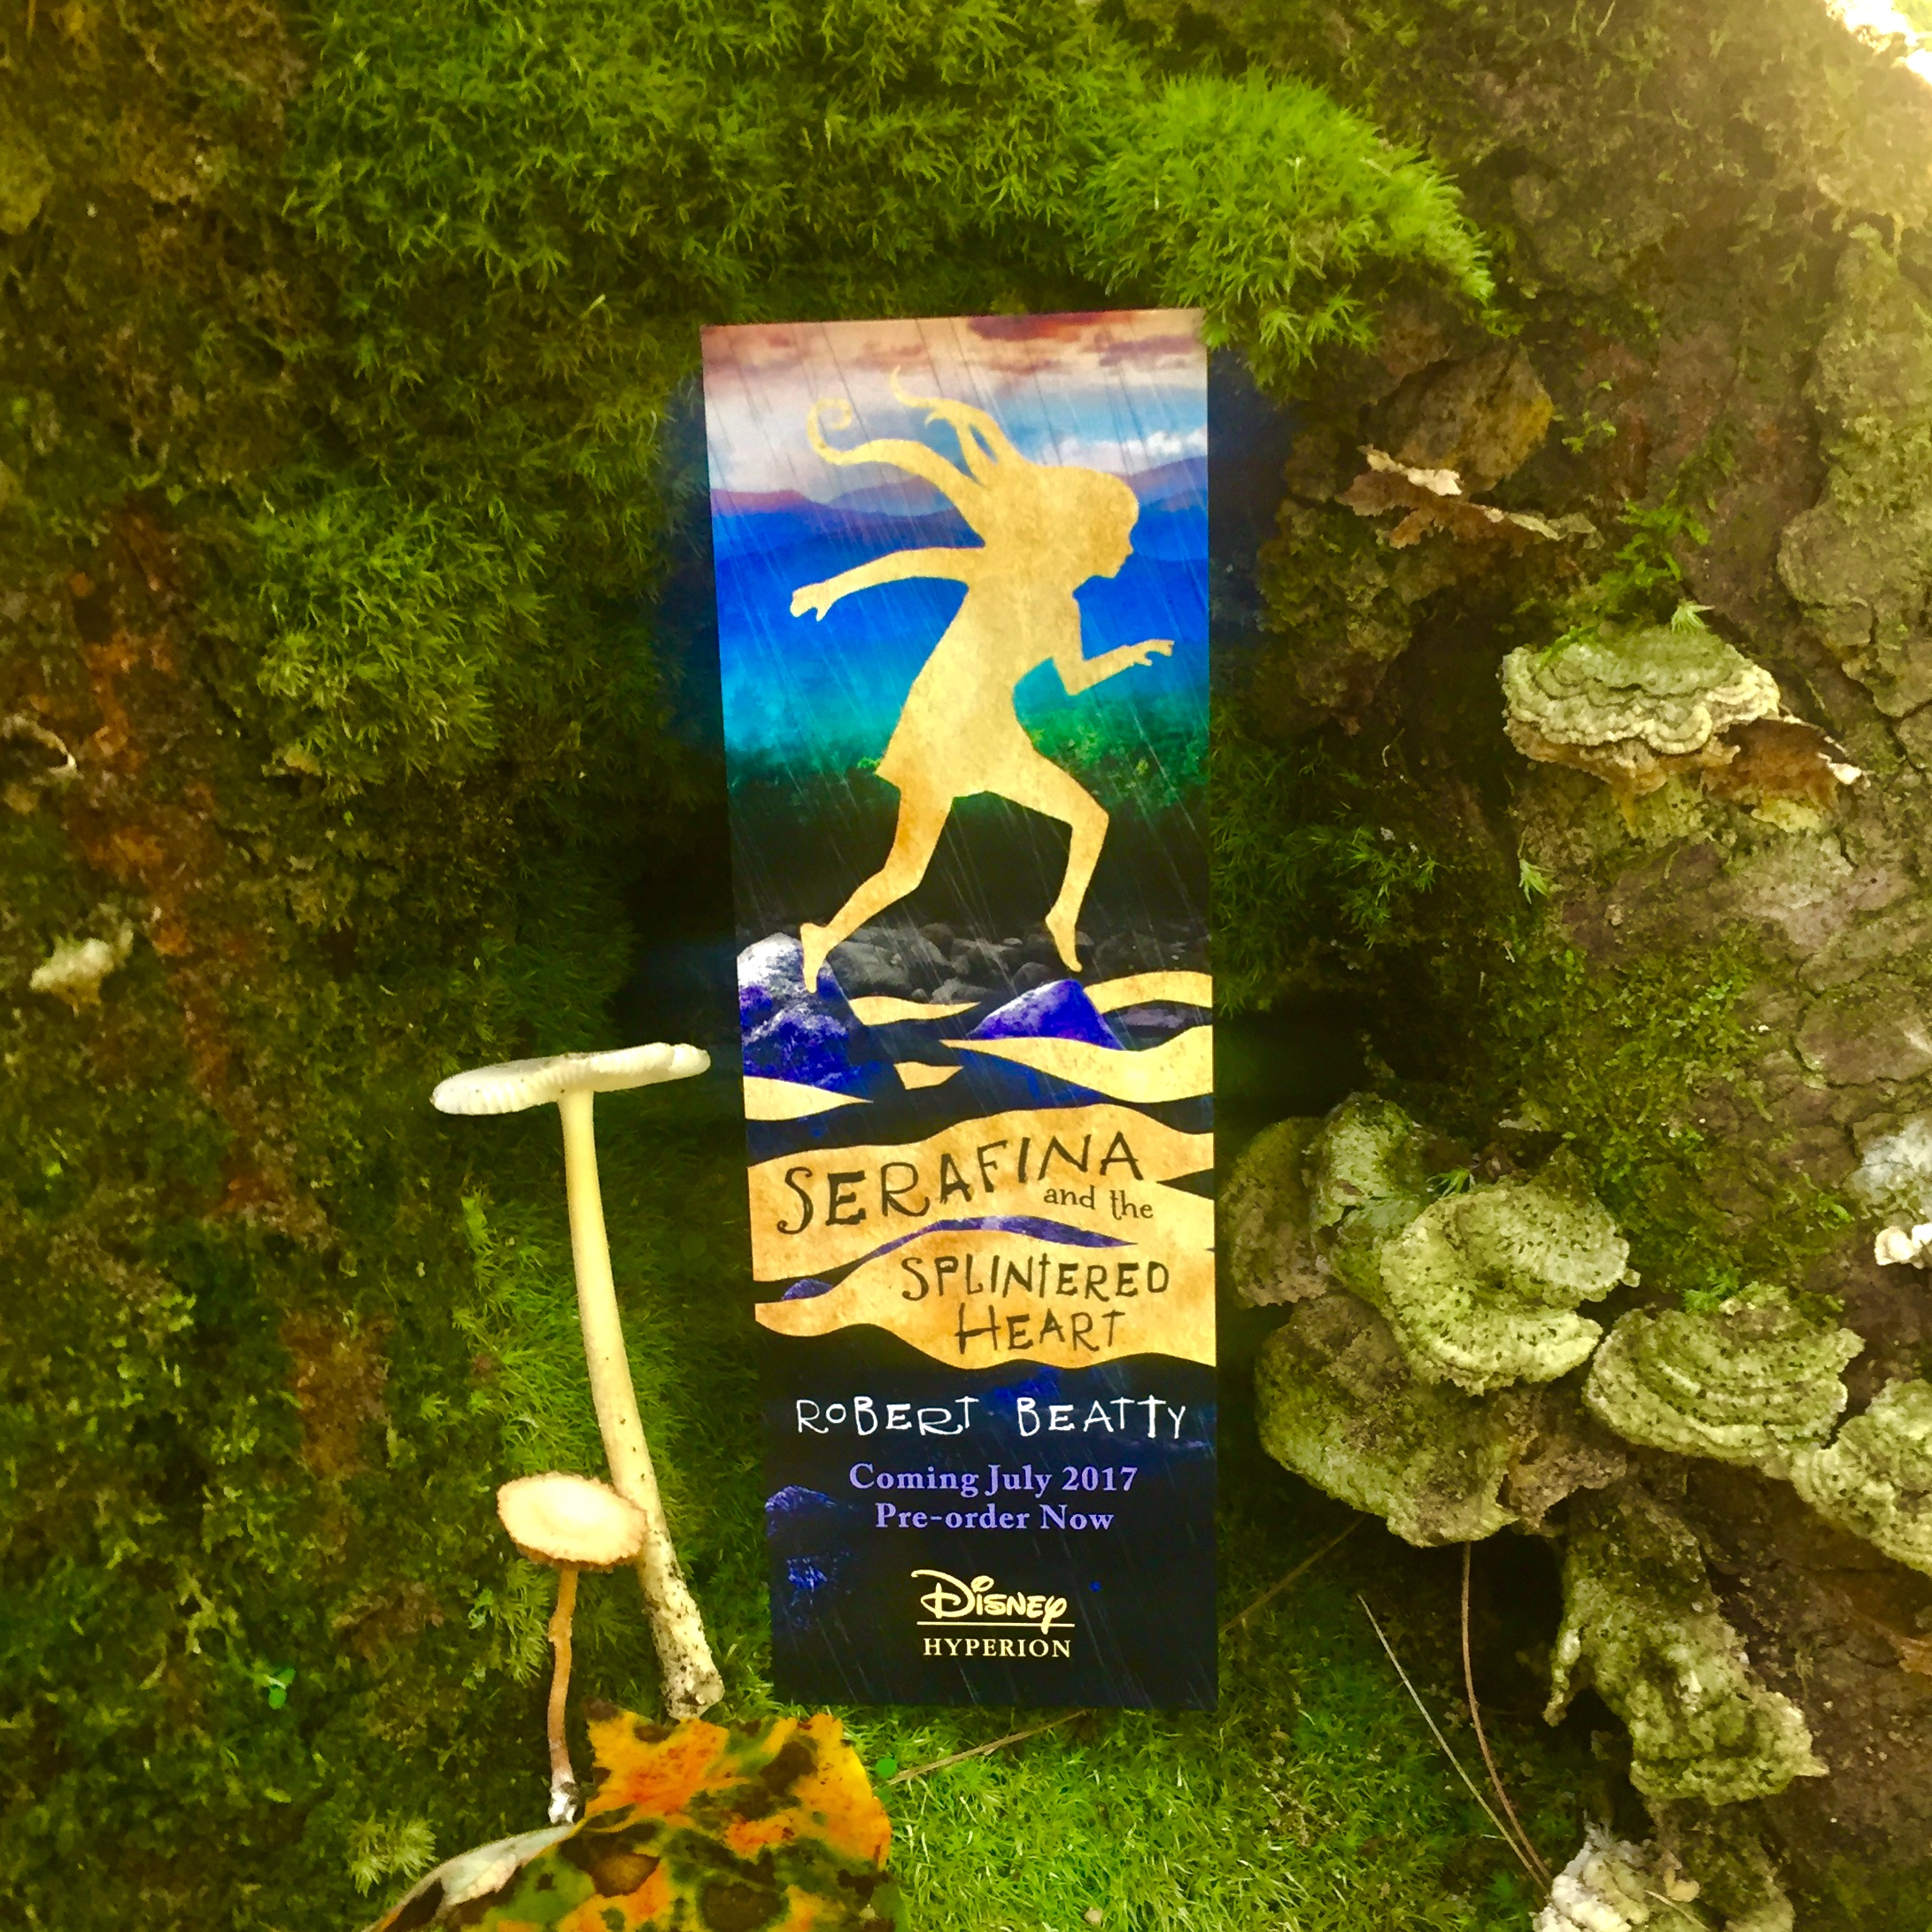 serafina-and-the-splintered-heart-robert-beatty-biltmore-asheville-appalachian-disney-hyperion-bookmark